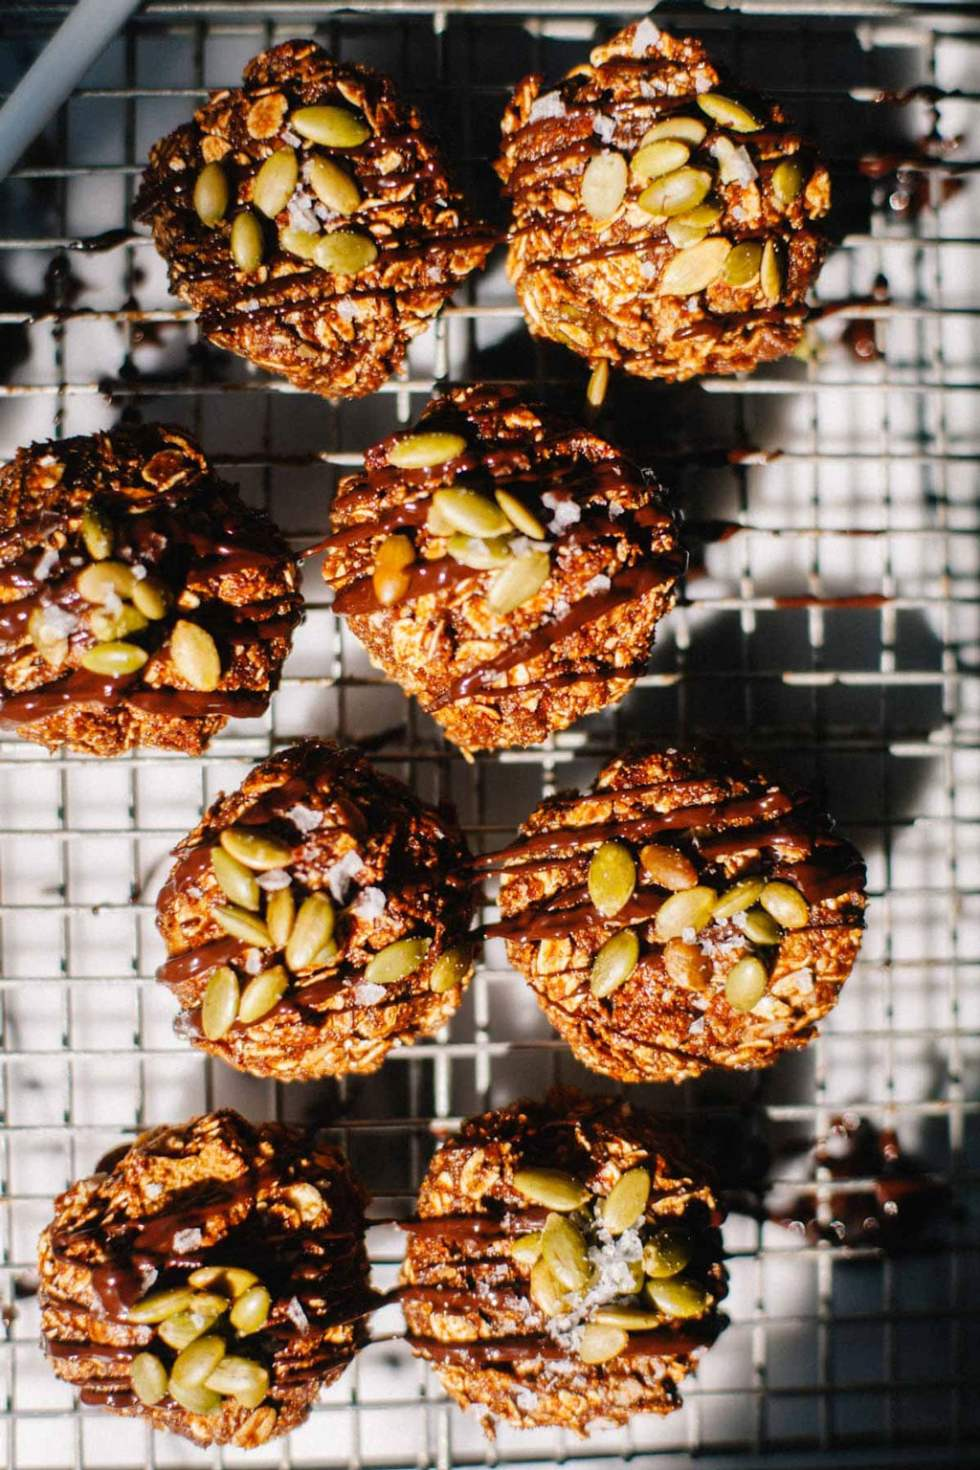 No Bake Chocolate Love Crunch Cookies basking in sunlight.